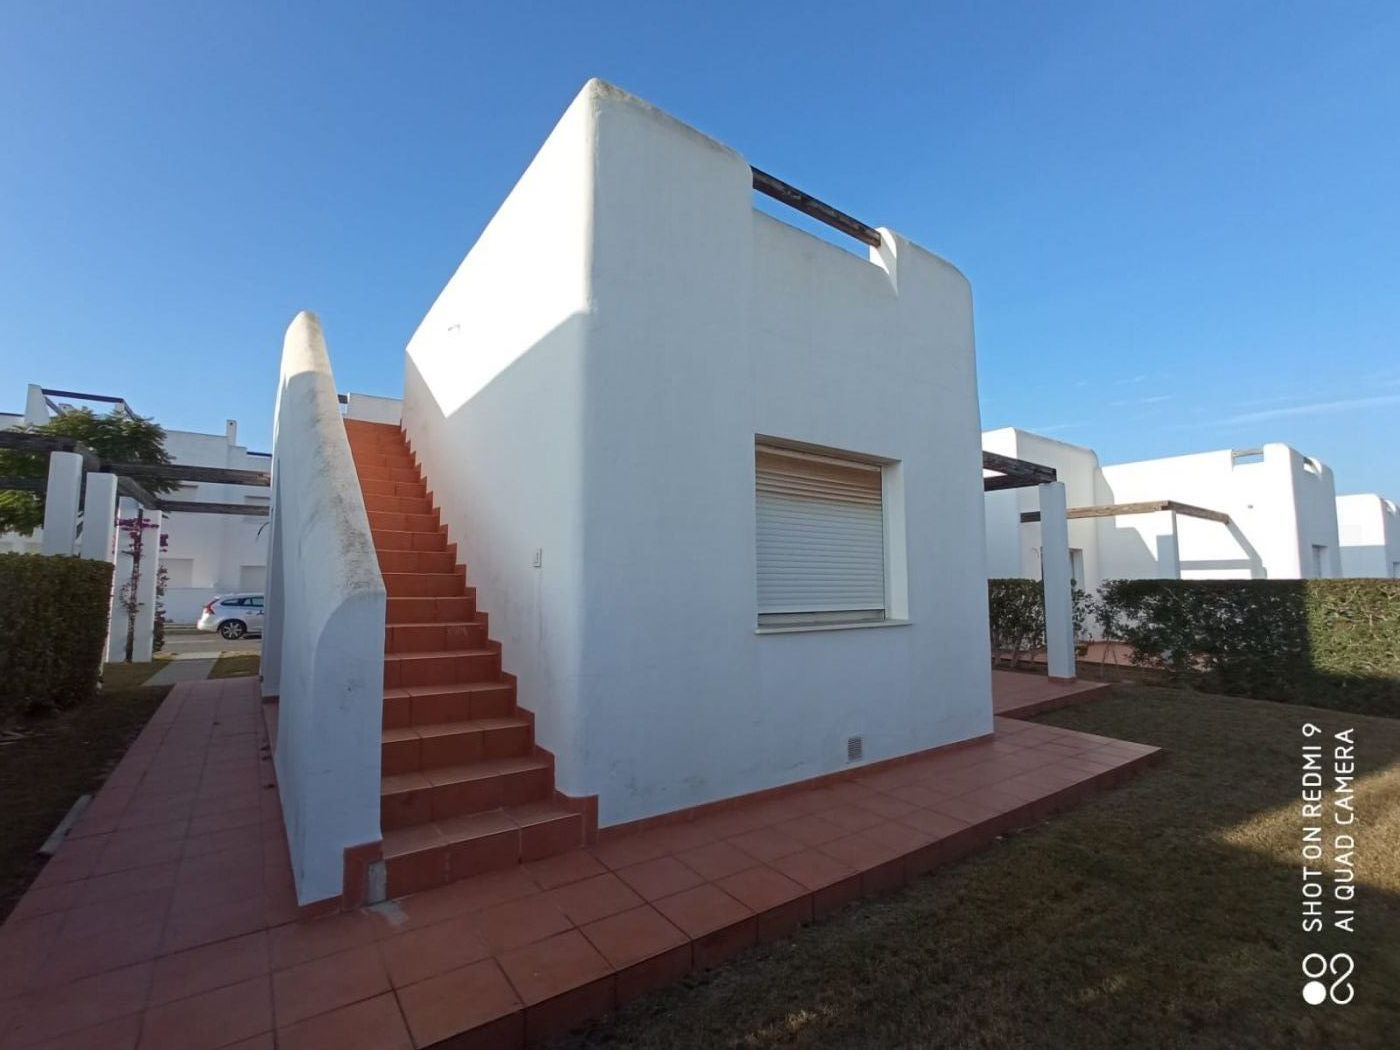 Gallery Image 1 of Villa Jana in need of some TLC for sale at bargain price